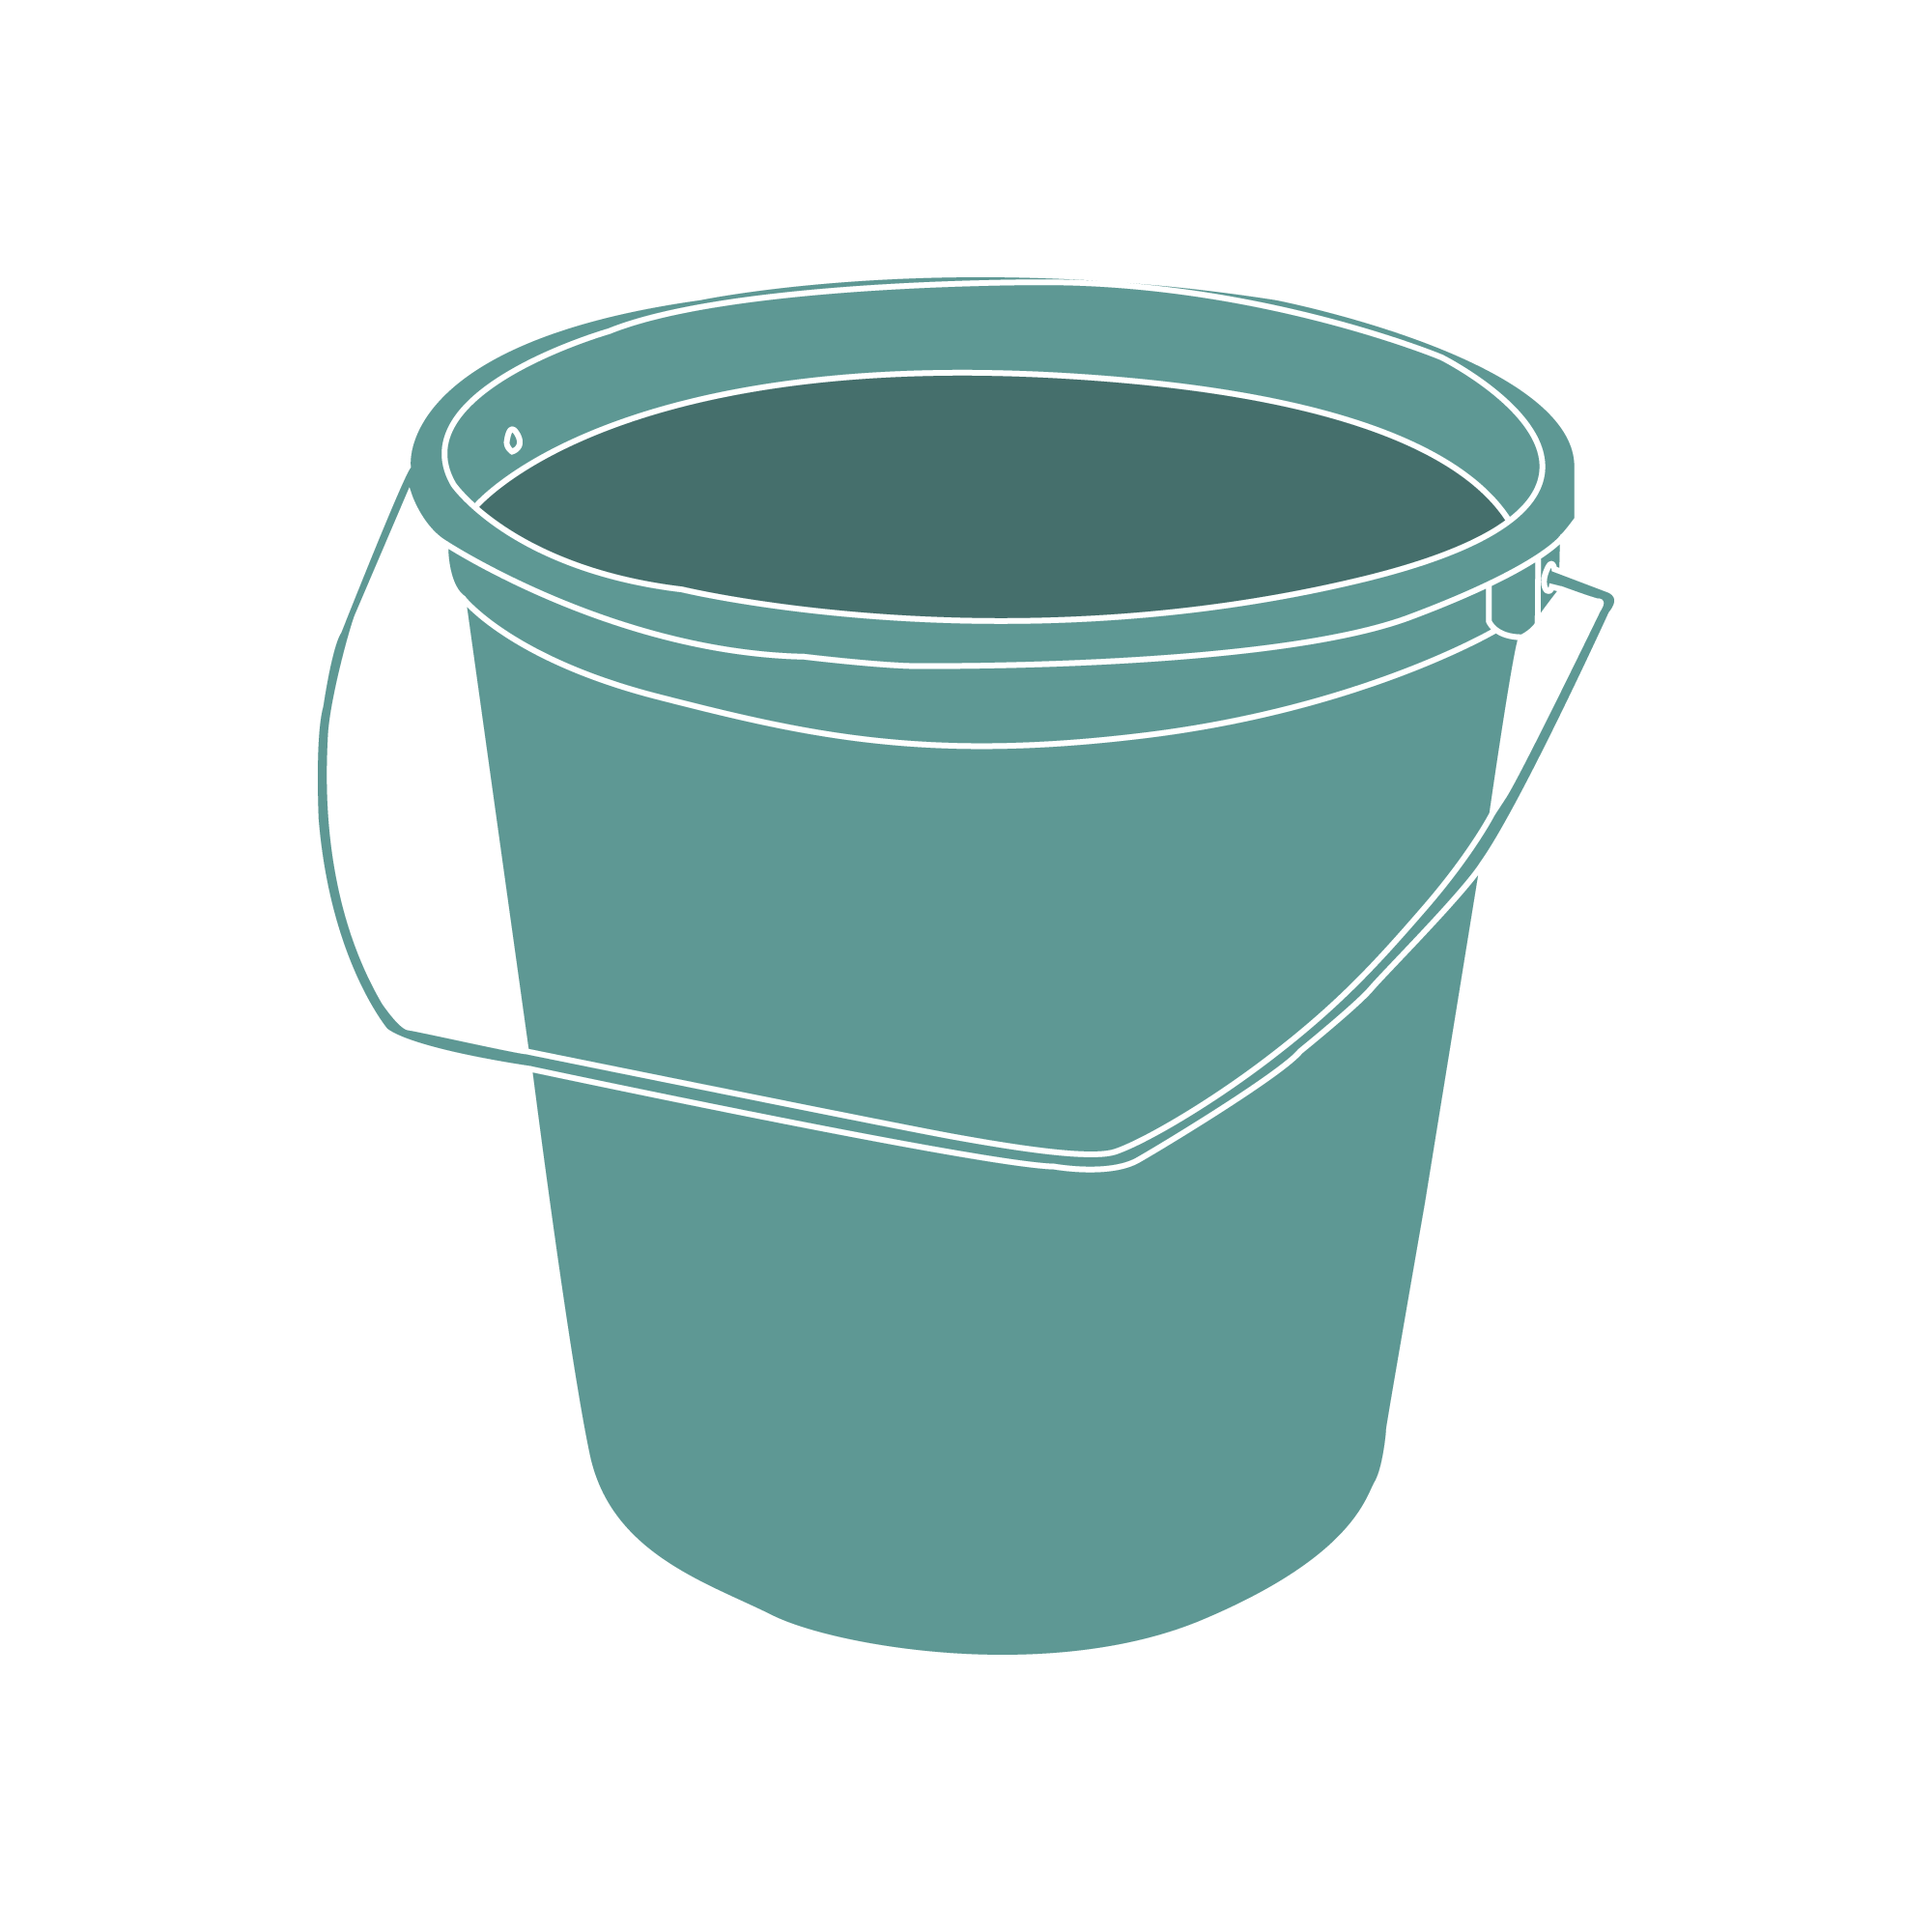 bucket icon-02.png